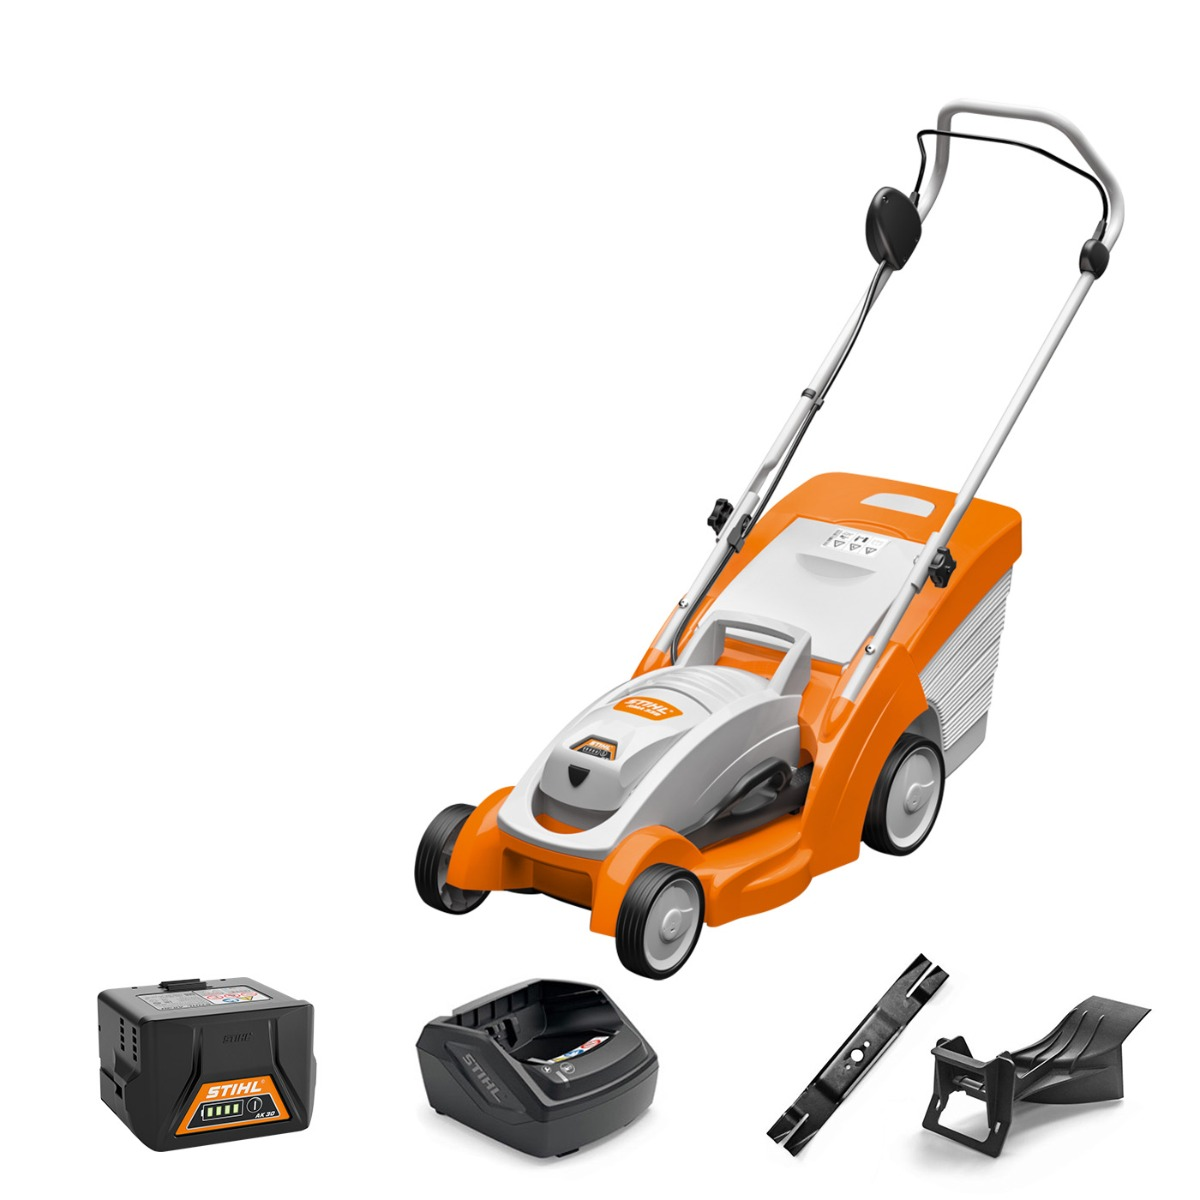 STIHL RMA 339 AK BATTERY LAWNMOWER KIT